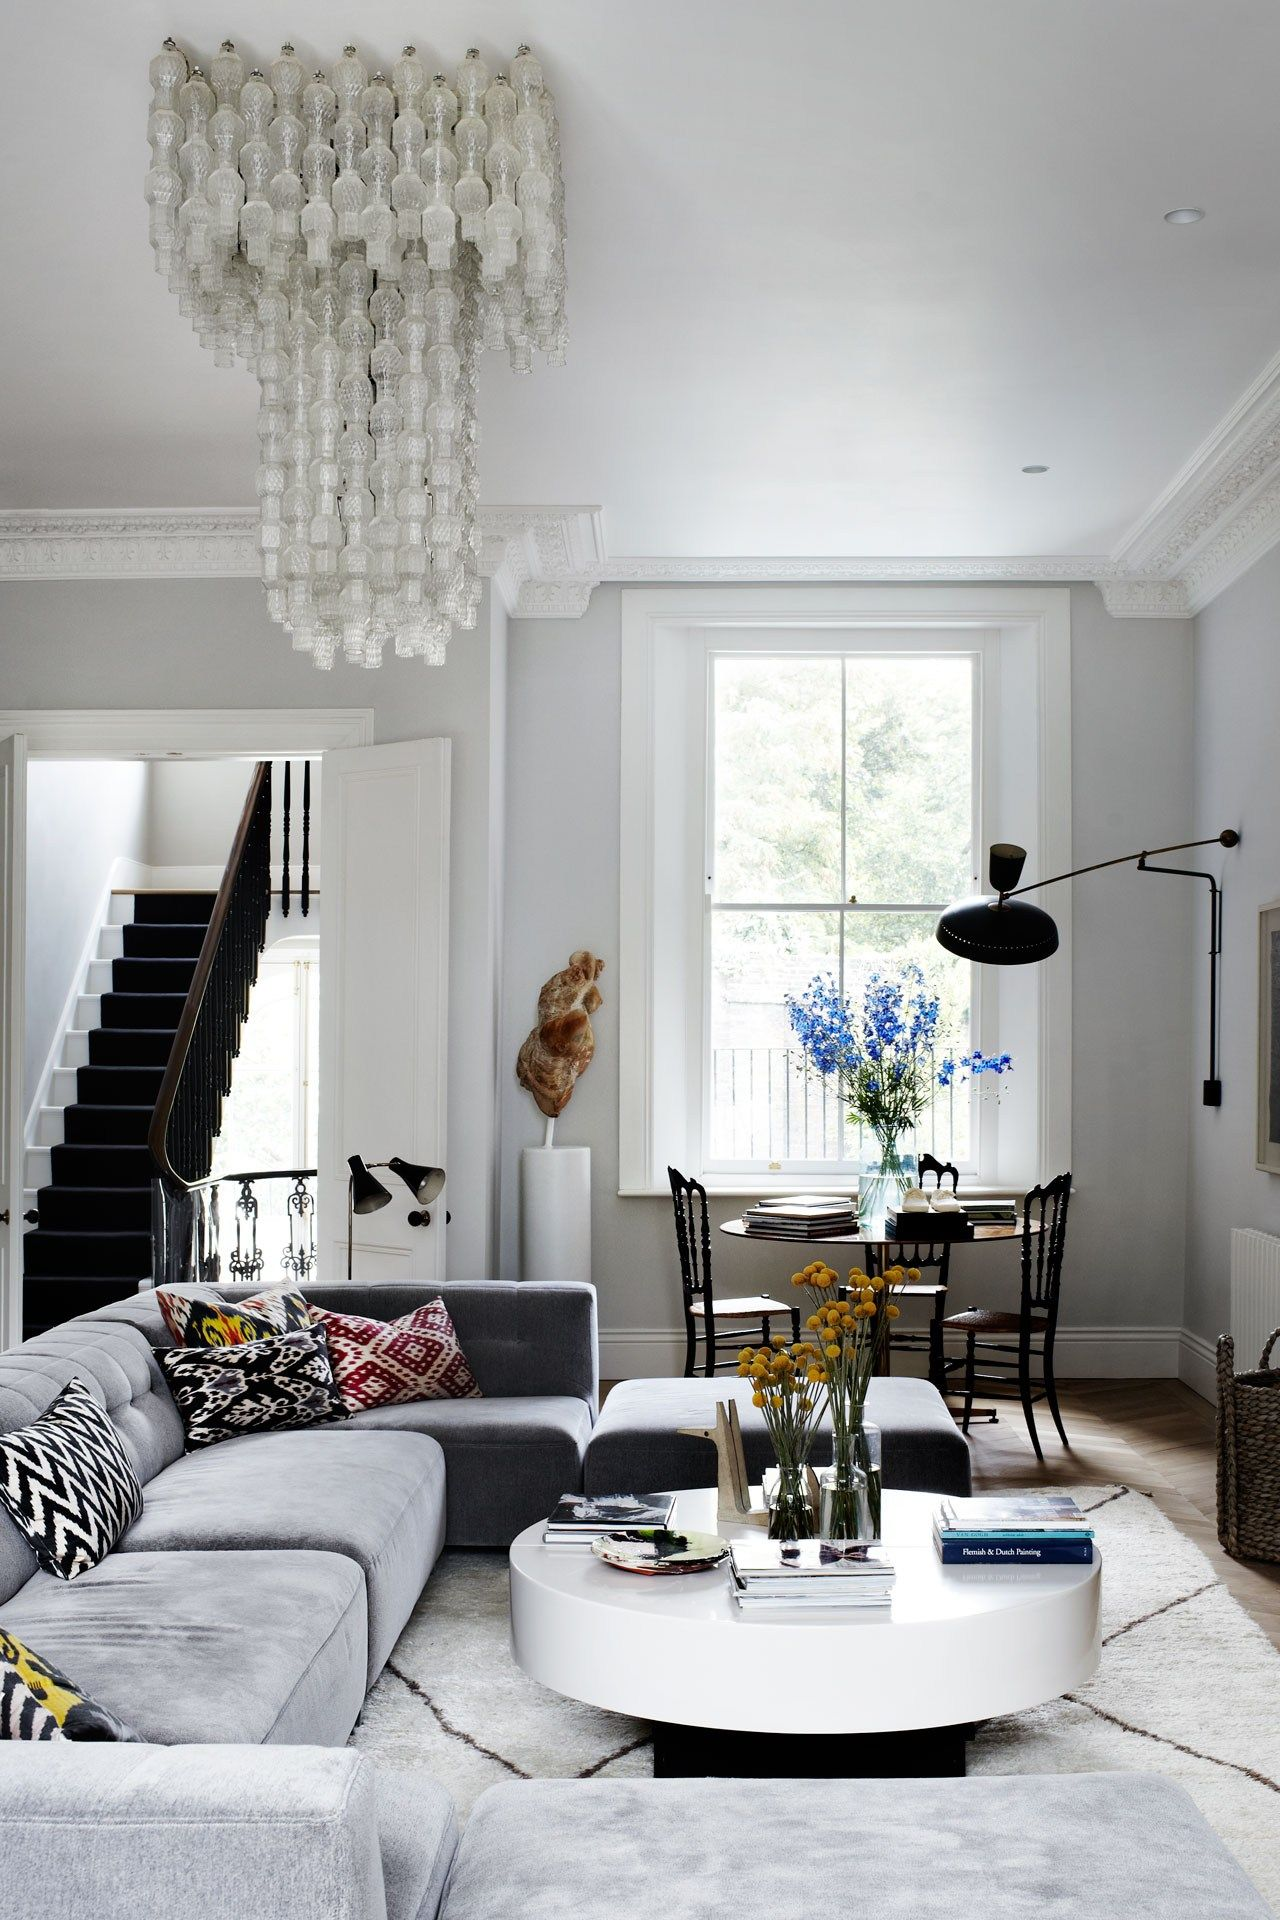 Seventies glamour mixed with mid-century Scandinavian | Pinterest ...